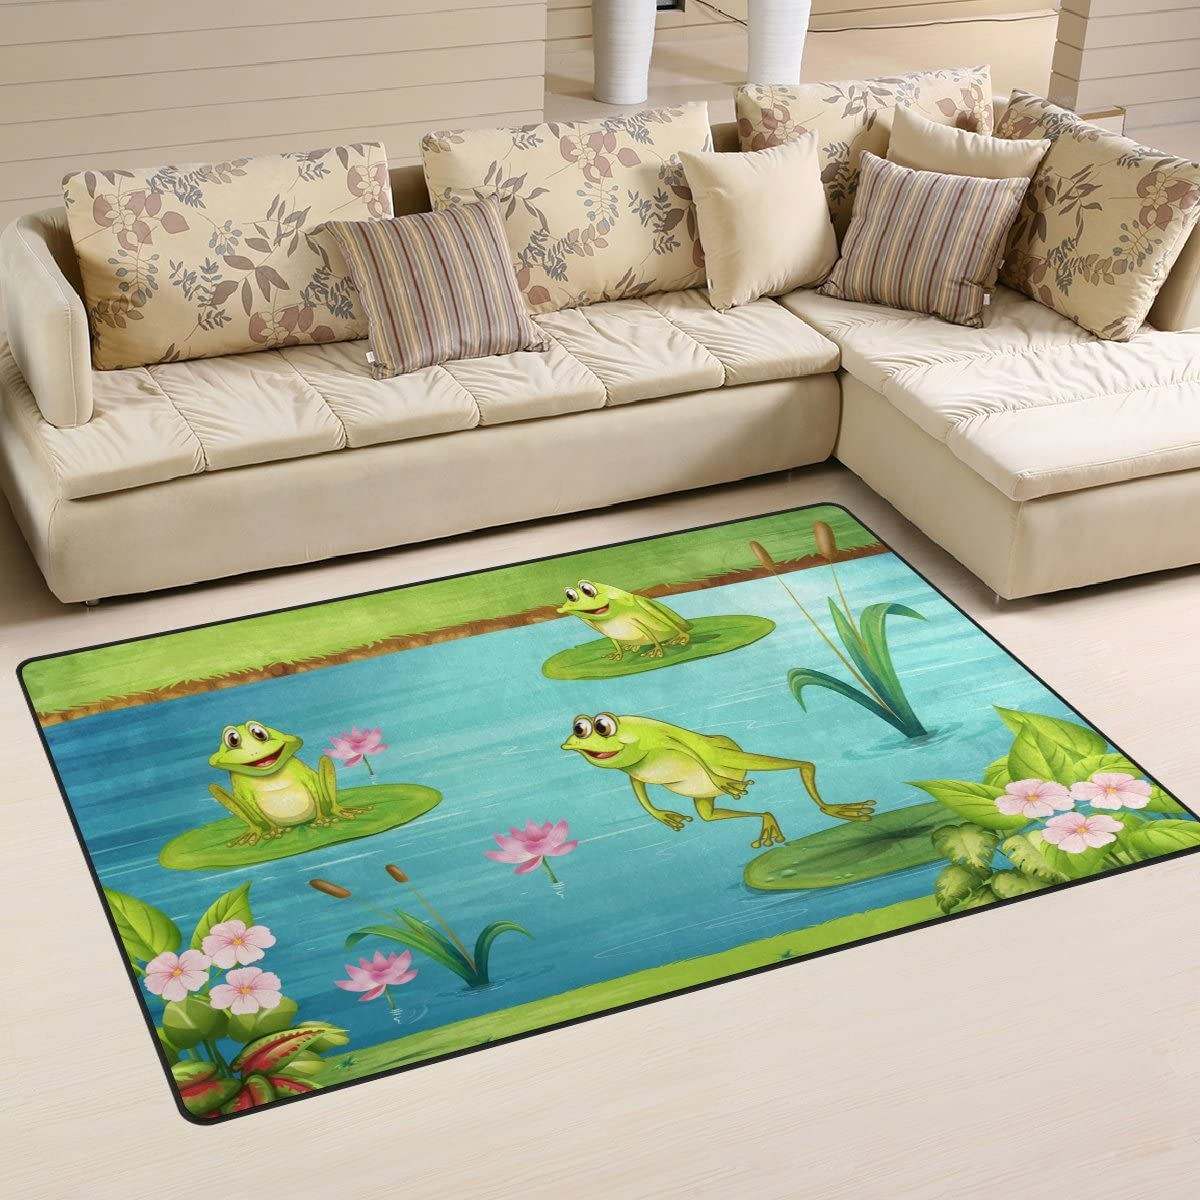 WOZO Vintage Frog Water Lily Area Rug Rugs Non-Slip Floor Mat Doormats Living Dining Room Bedroom Dorm 60 x 39 inches inches Home Decor